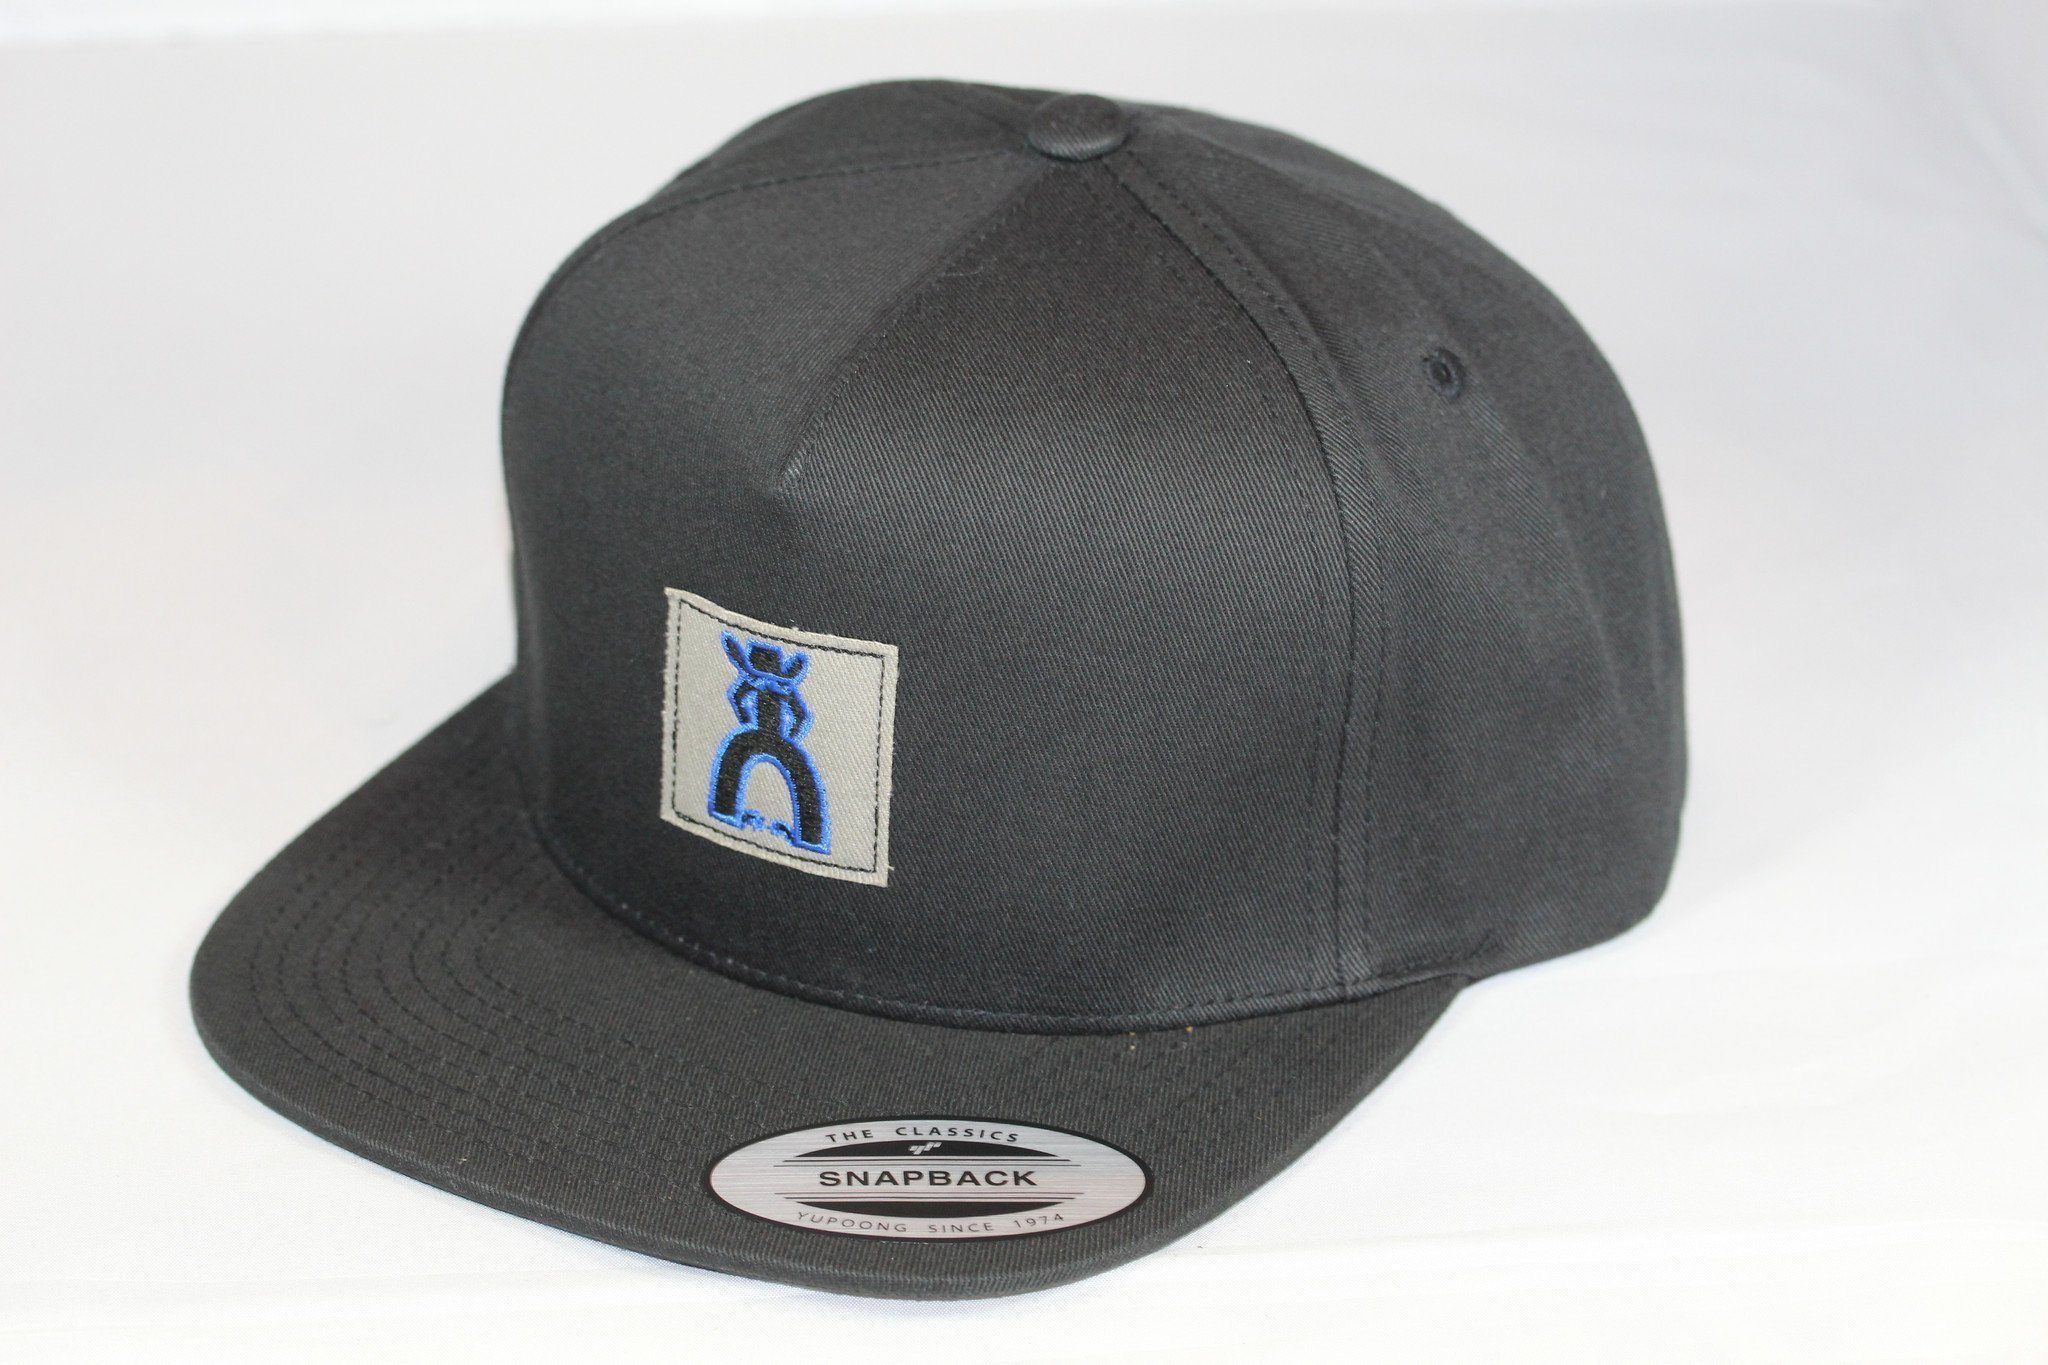 HOOEY Hat Punchy black and tan SnapBack 5011T-BK